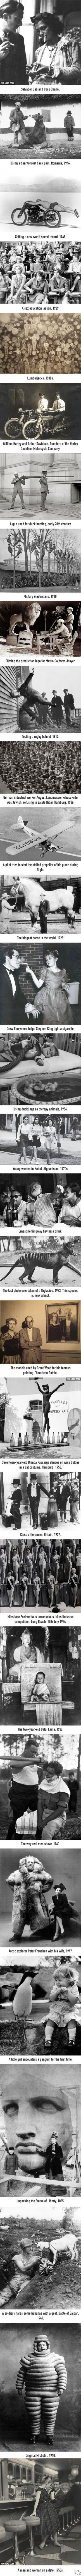 30 captivating historical photographs that you need to see - 9GAG